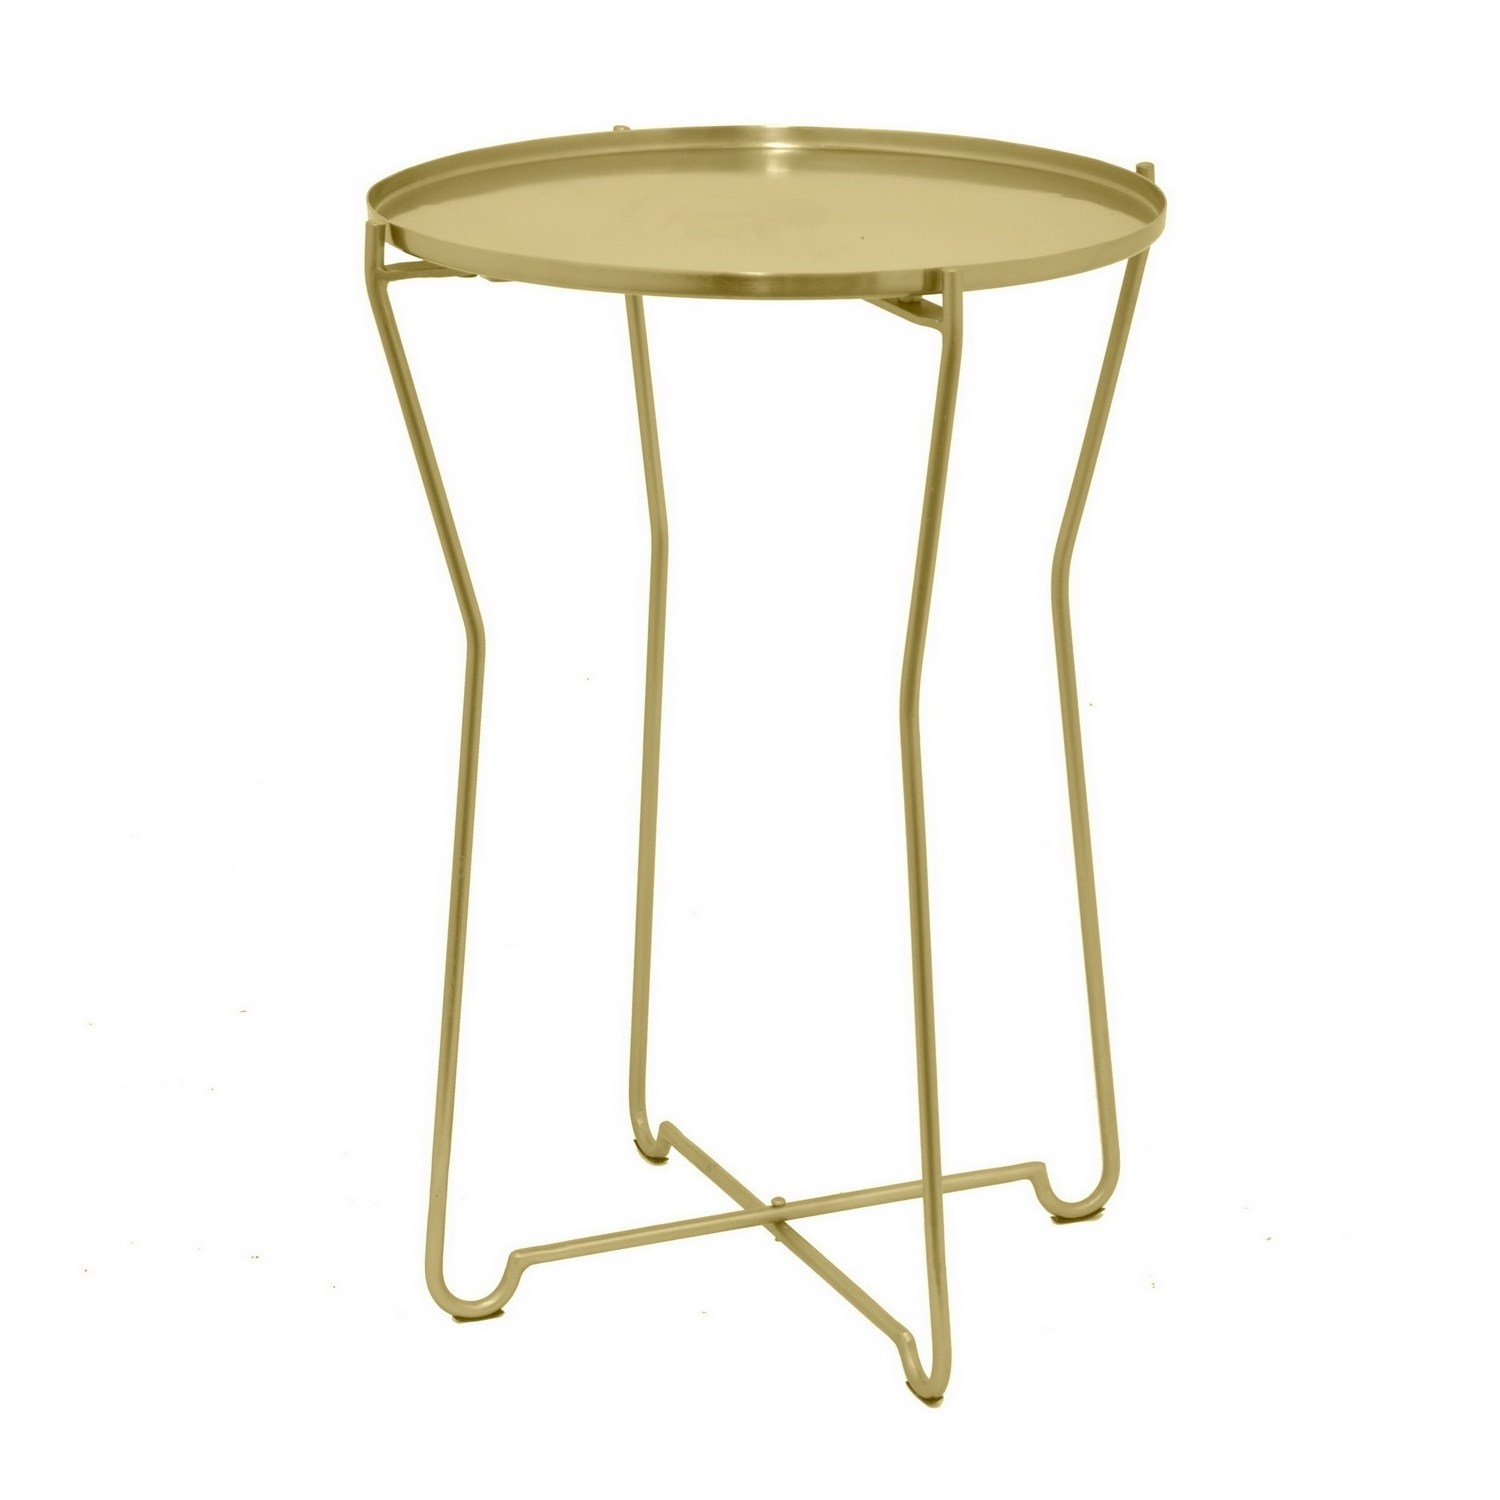 three hands round metal accent table gold free shipping today outdoor bar set white marble side meyda tiffany lamp bases ideas coffee tables melbourne lucite stacking dinner sofa